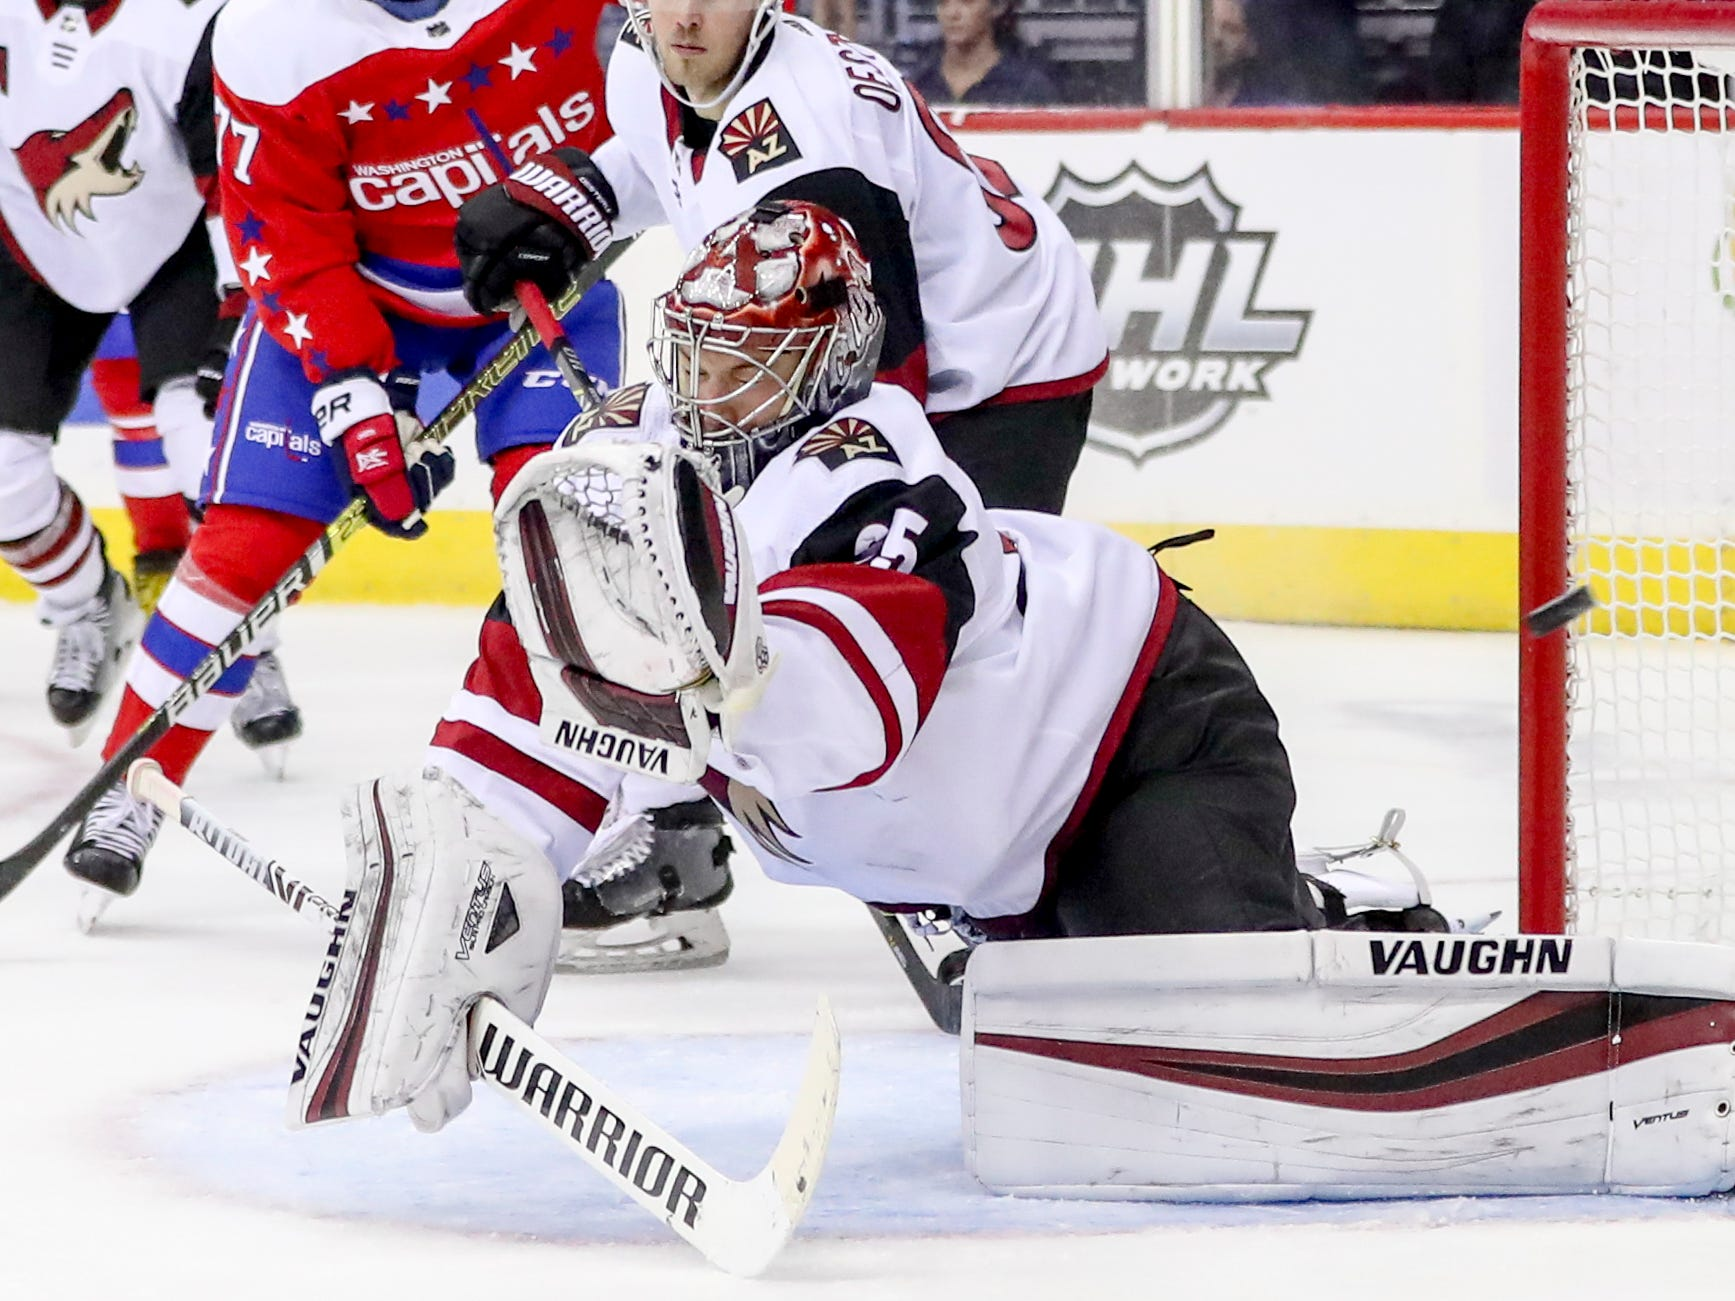 Washington Capitals center Nicklas Backstrom scores against Arizona Coyotes goaltender Darcy Kuemper in the second period of an NHL hockey game, Sunday, Nov. 11, 2018 in Washington. (AP Photo/Andrew Harnik)